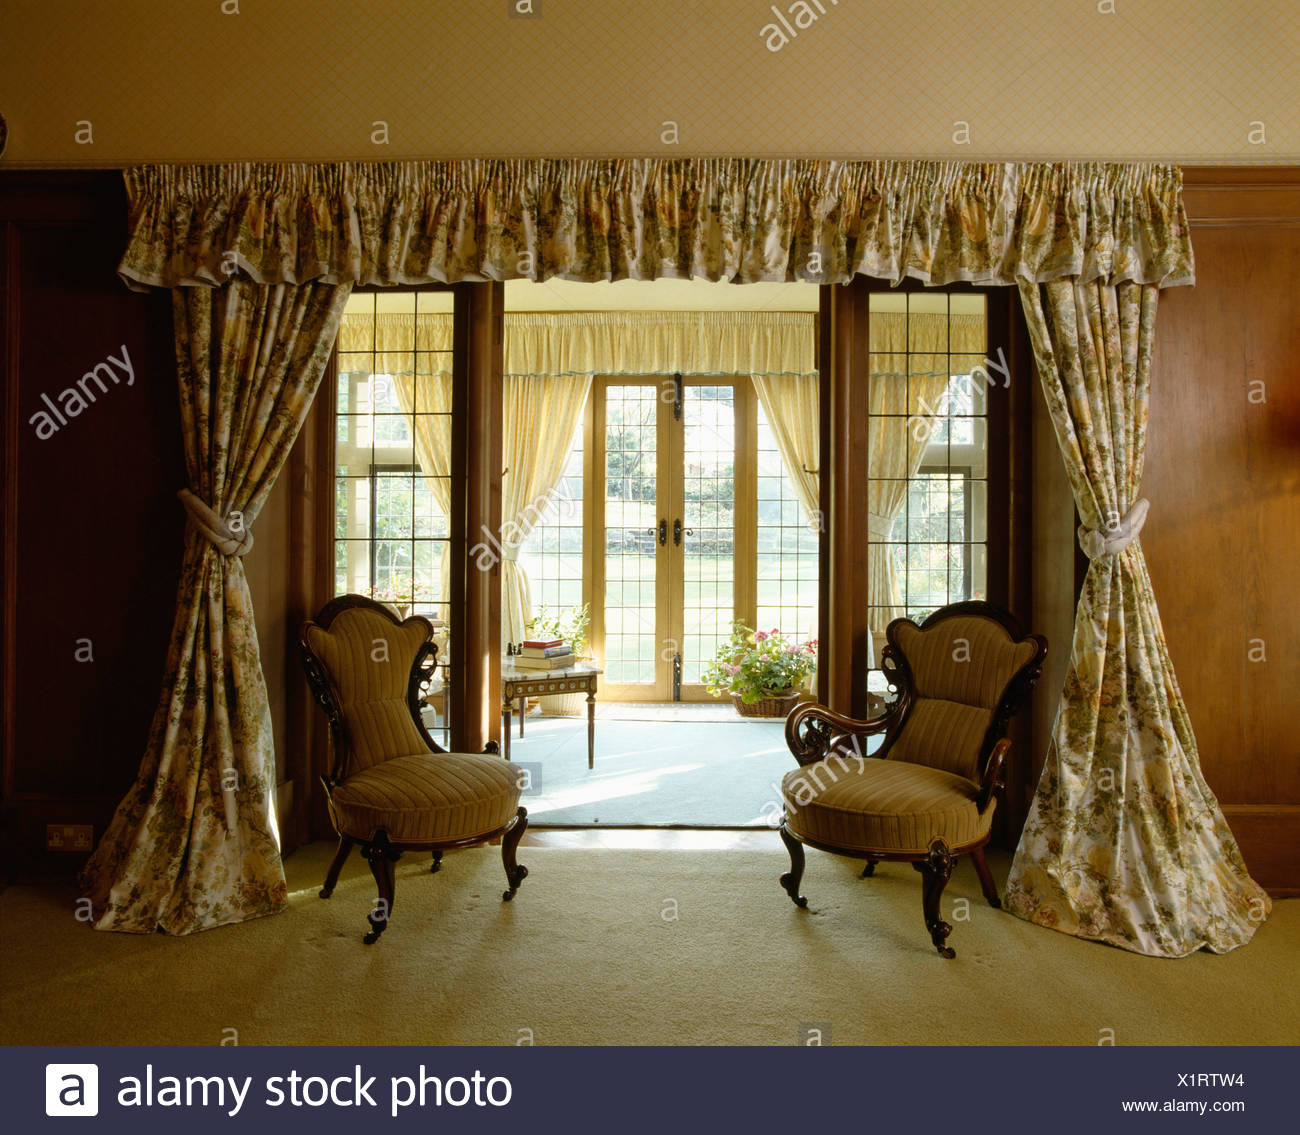 Patterned Drapes And Internal Double Glass Doors In Sittingroom With